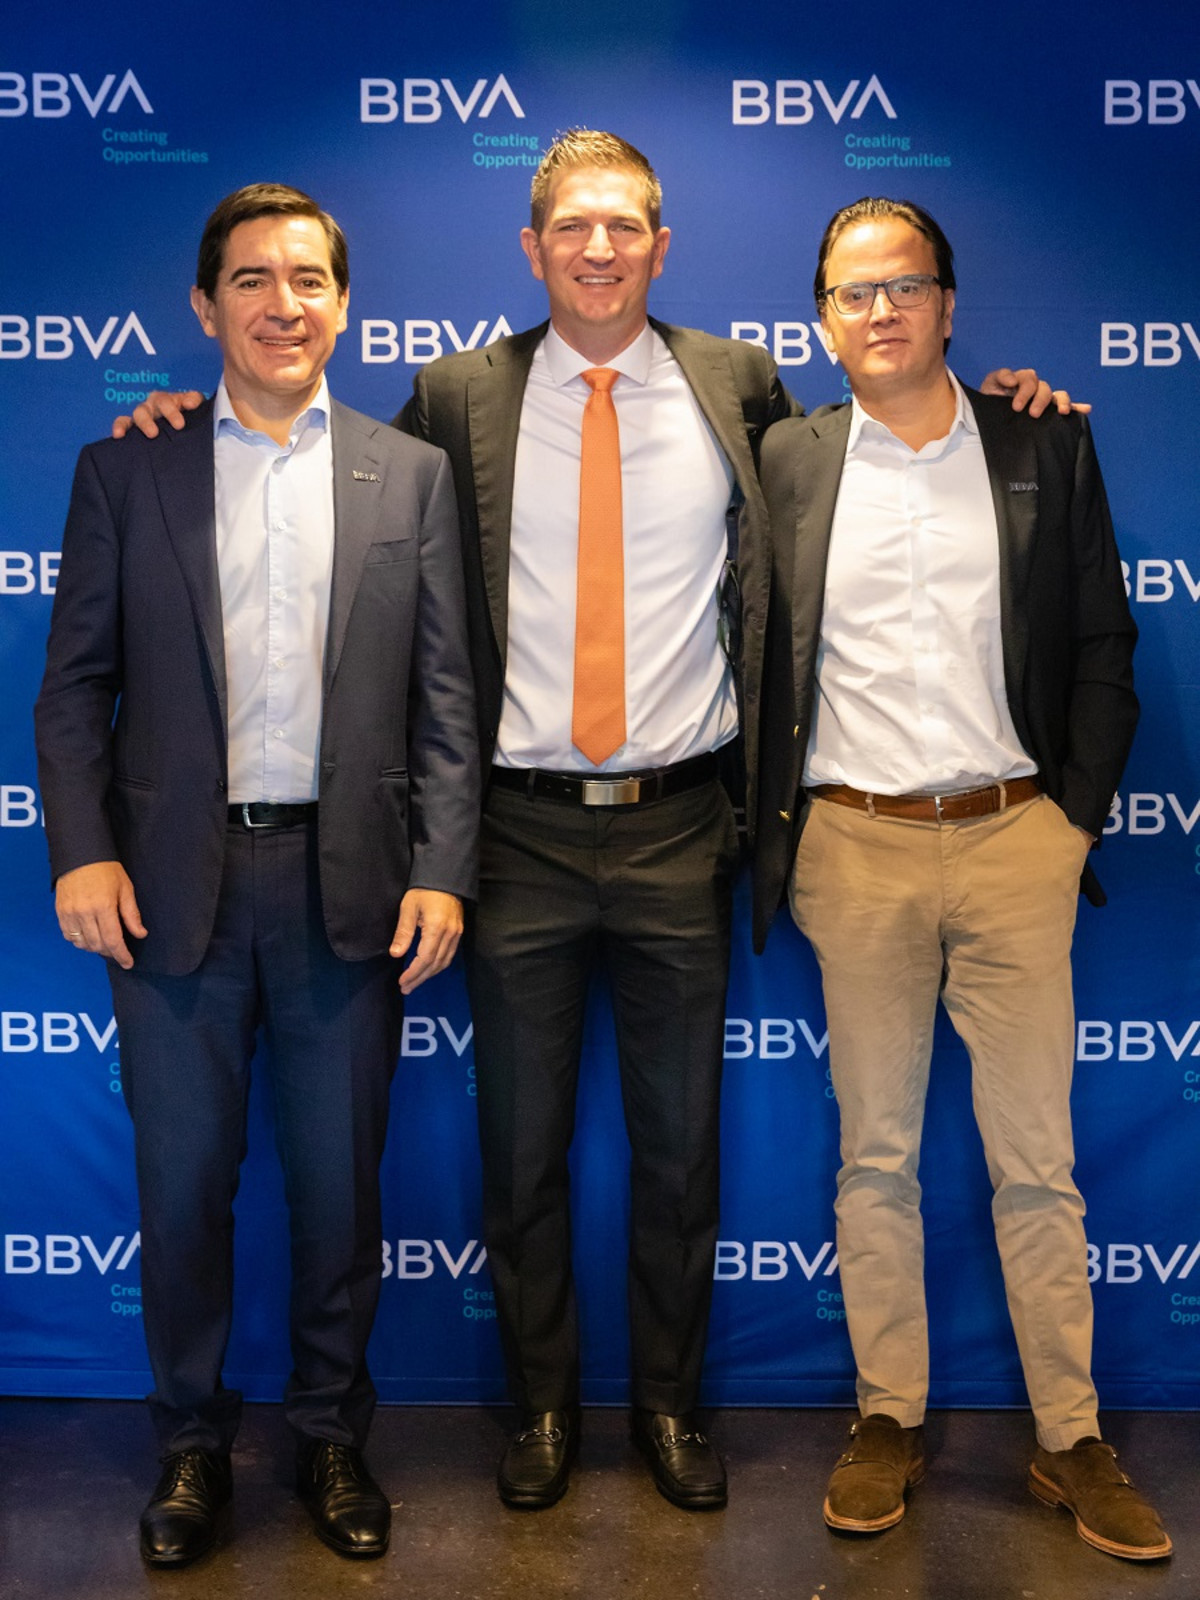 BBVA Group Executive Chairman Carlos Torres Vila (left), Dynamo former player Bobby Boswell (center), and BBVA USA President and CEO Javier Rodriguez Soler (right) at the BBVA Stadium press conference in Houston